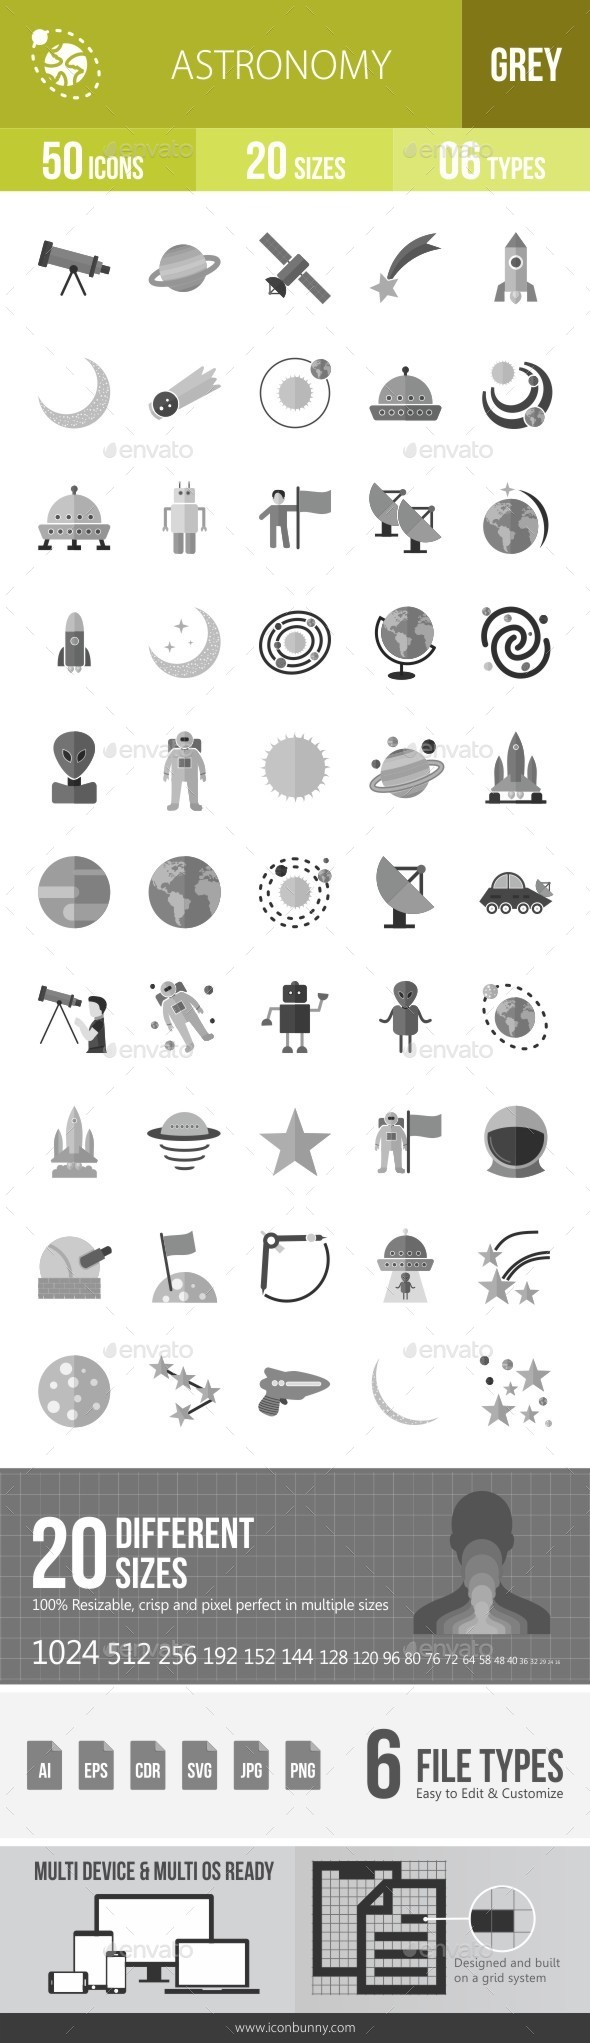 Astronomy Greyscale Icons - Icons